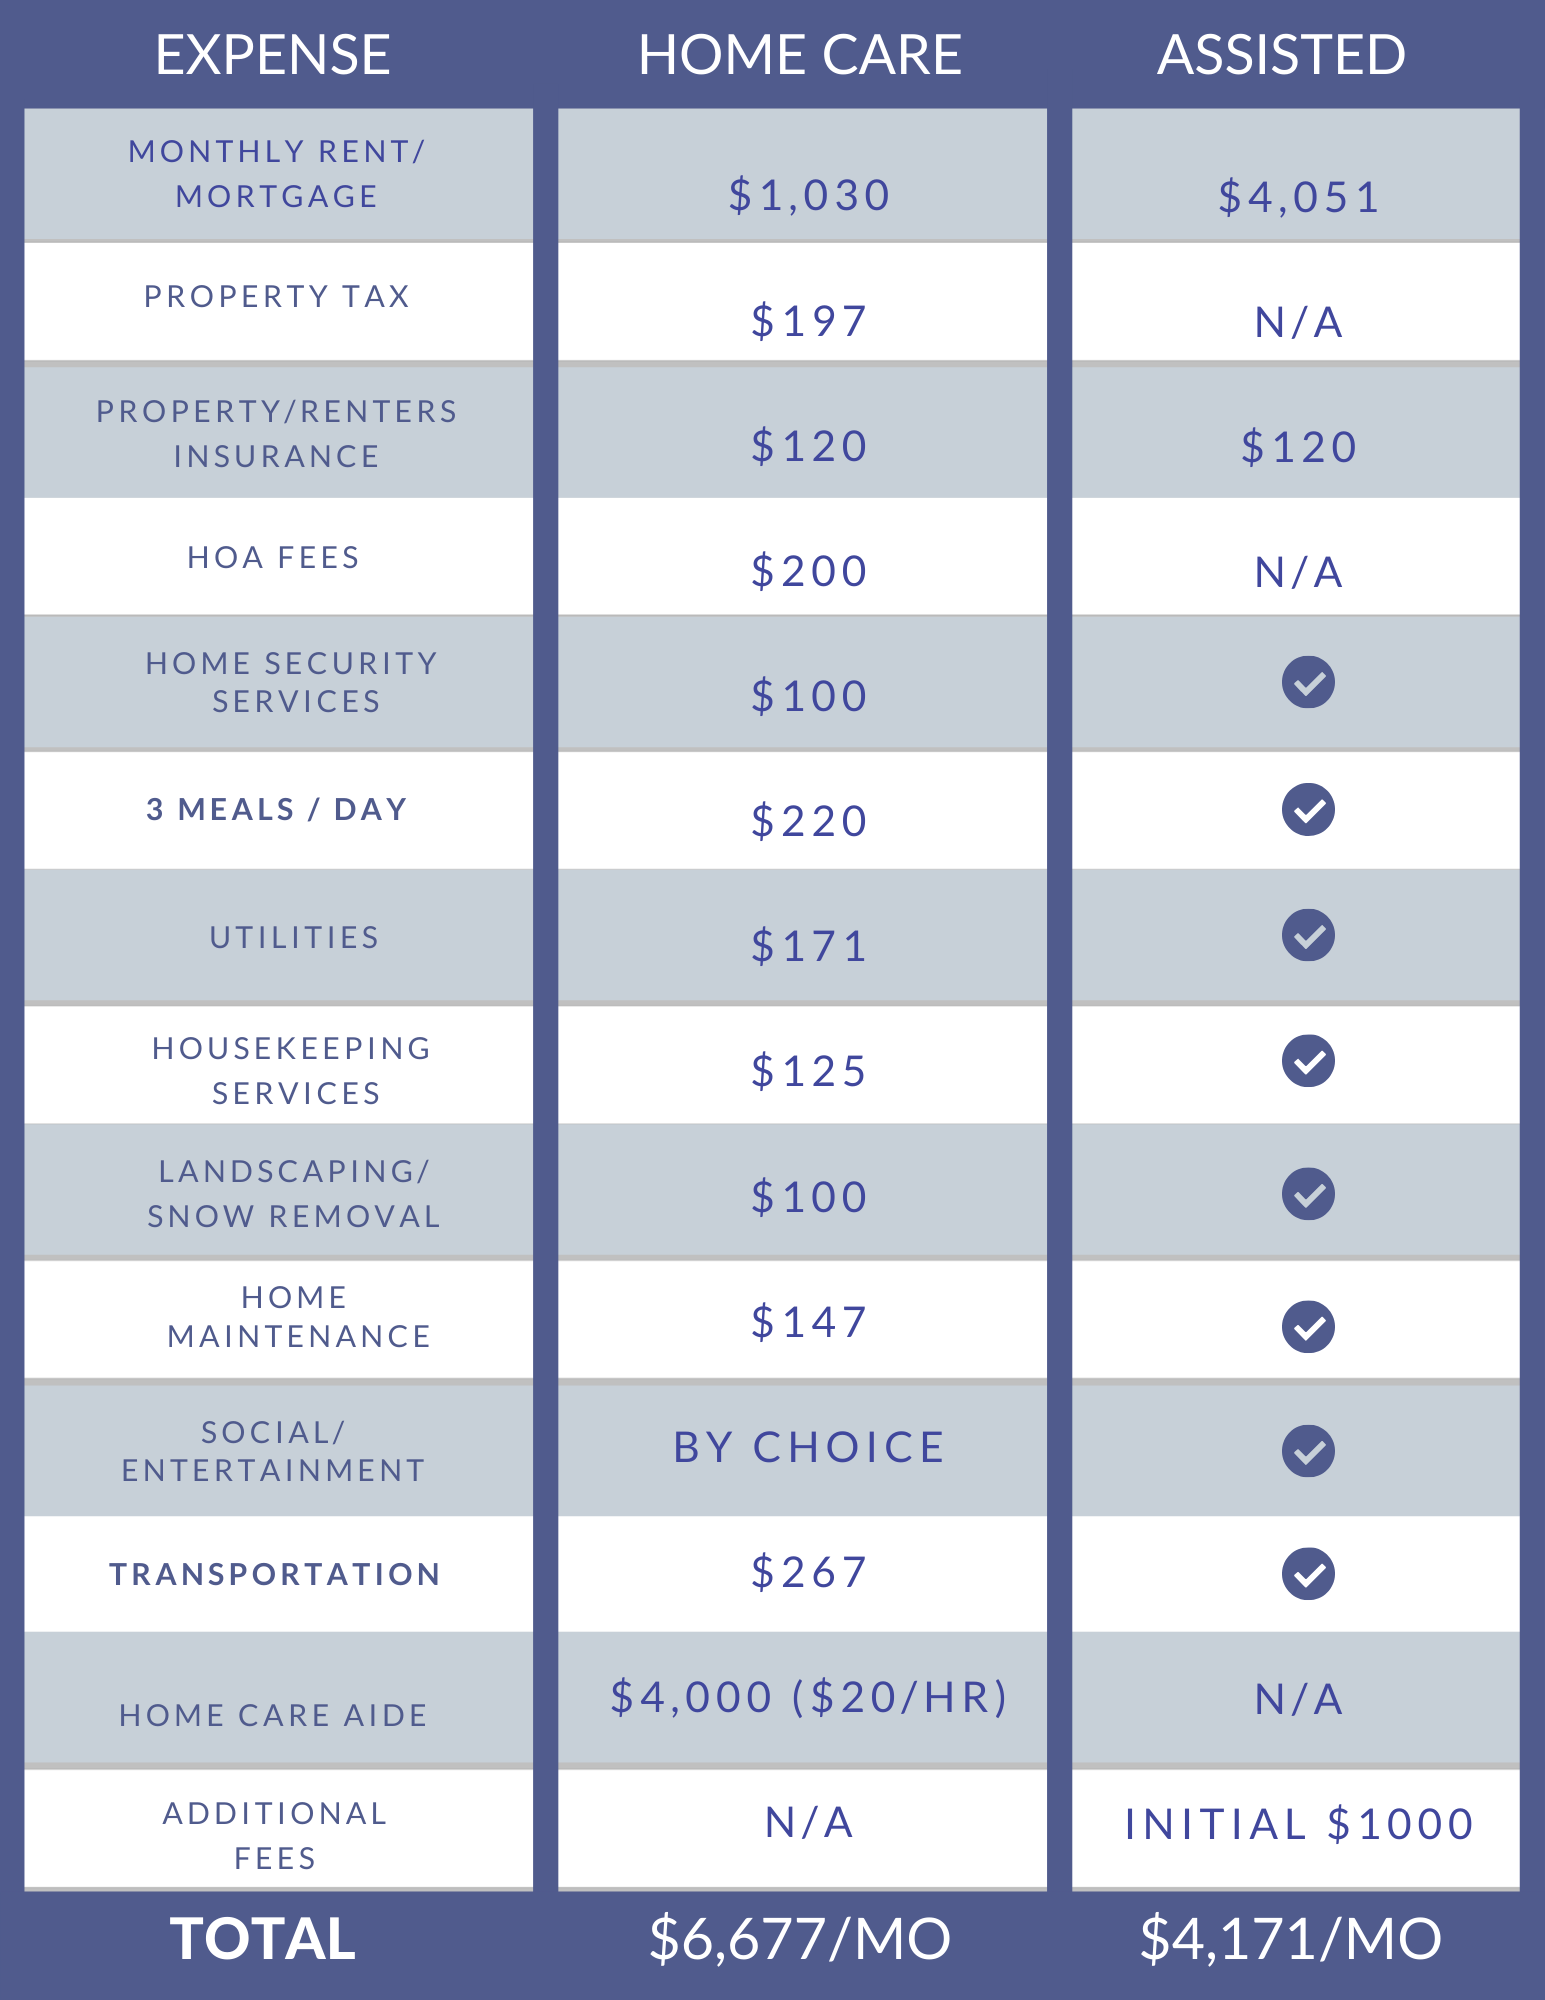 Assisted living vs. home care cost comparison chart